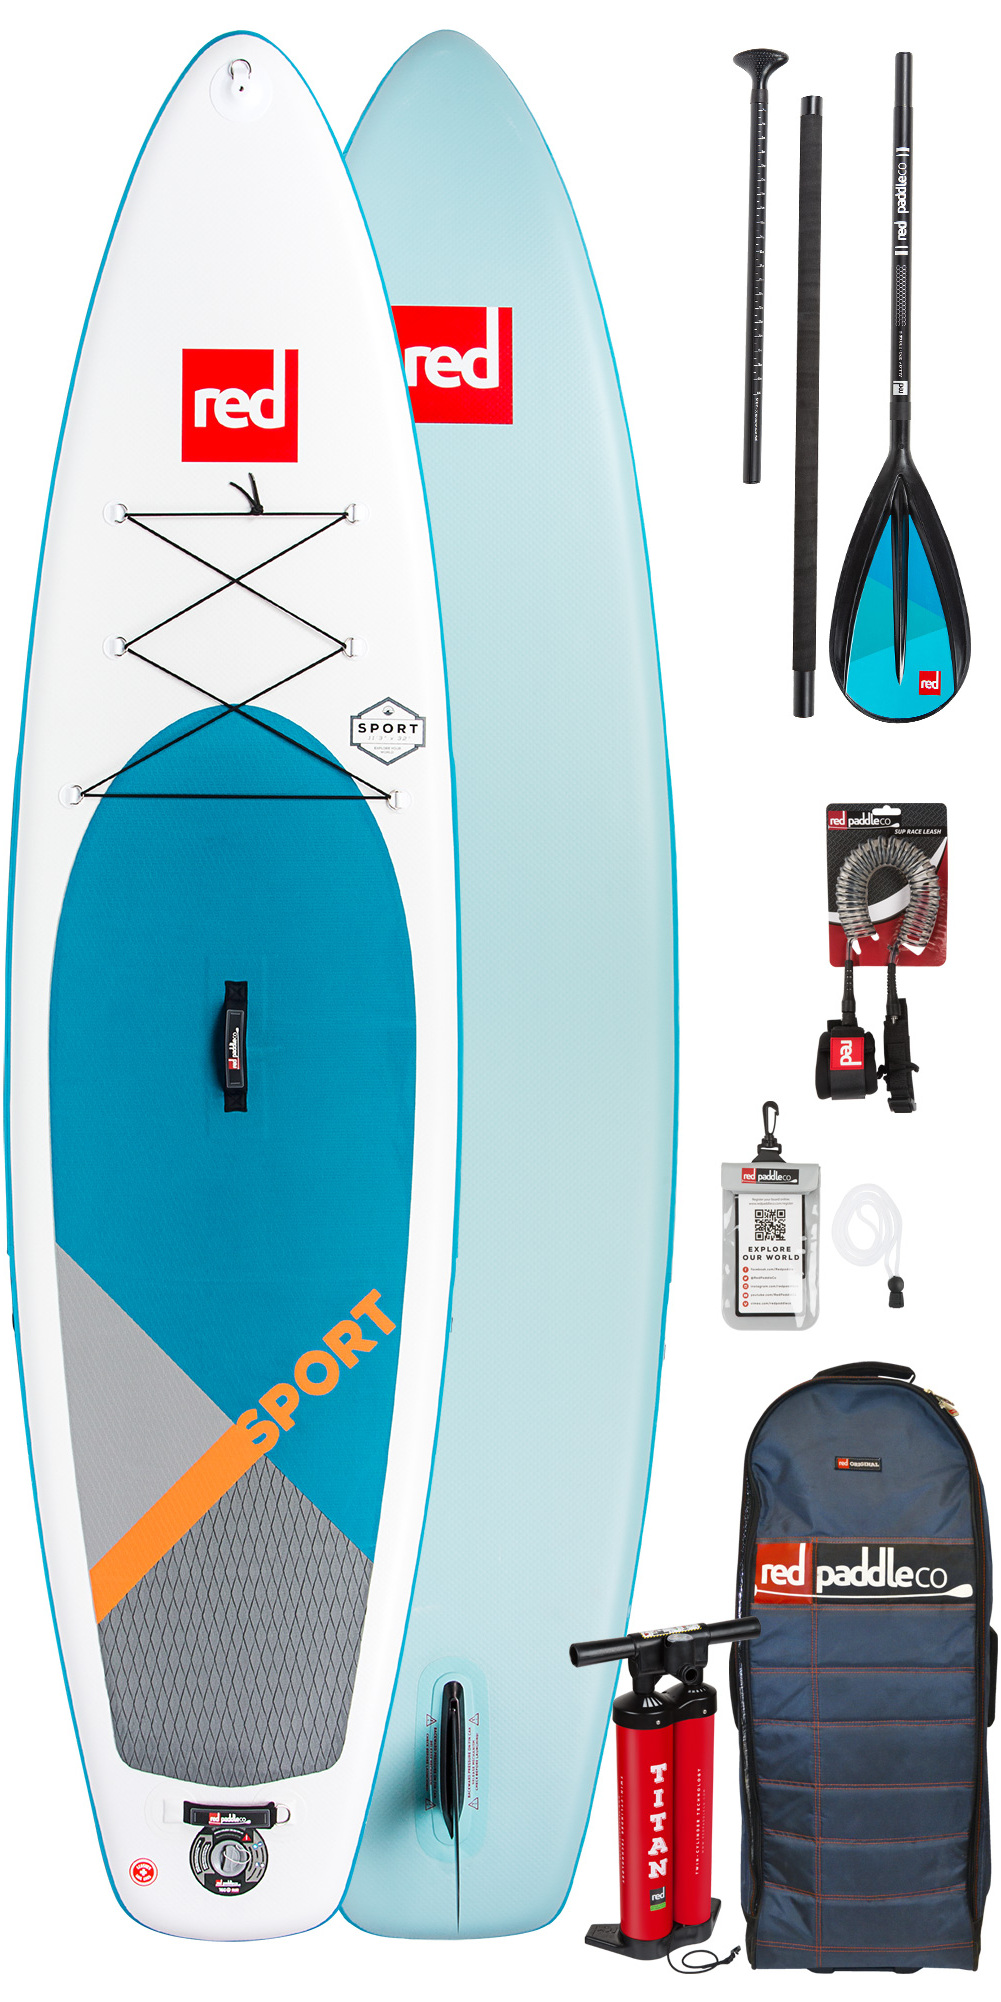 0f7d1a549ee2 2019 Red Paddle Co Sport 126 Inflatable Stand Up Paddle Board Bag Pump  Paddle & Leash | Wetsuit Outlet